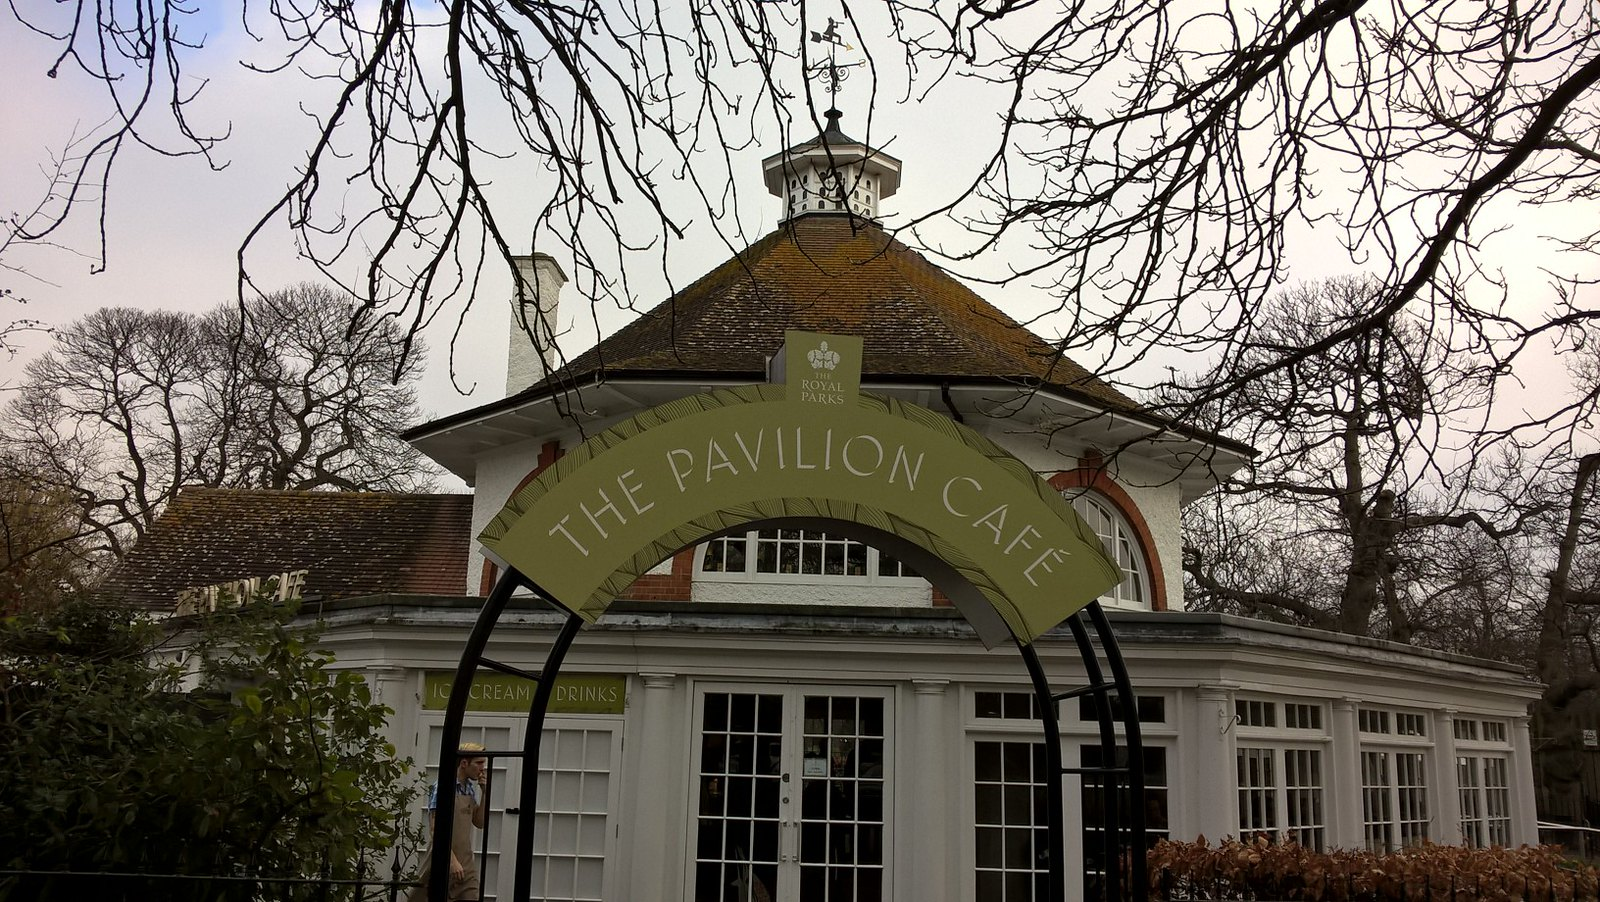 The Pavilion Cafe, Greenwich Park